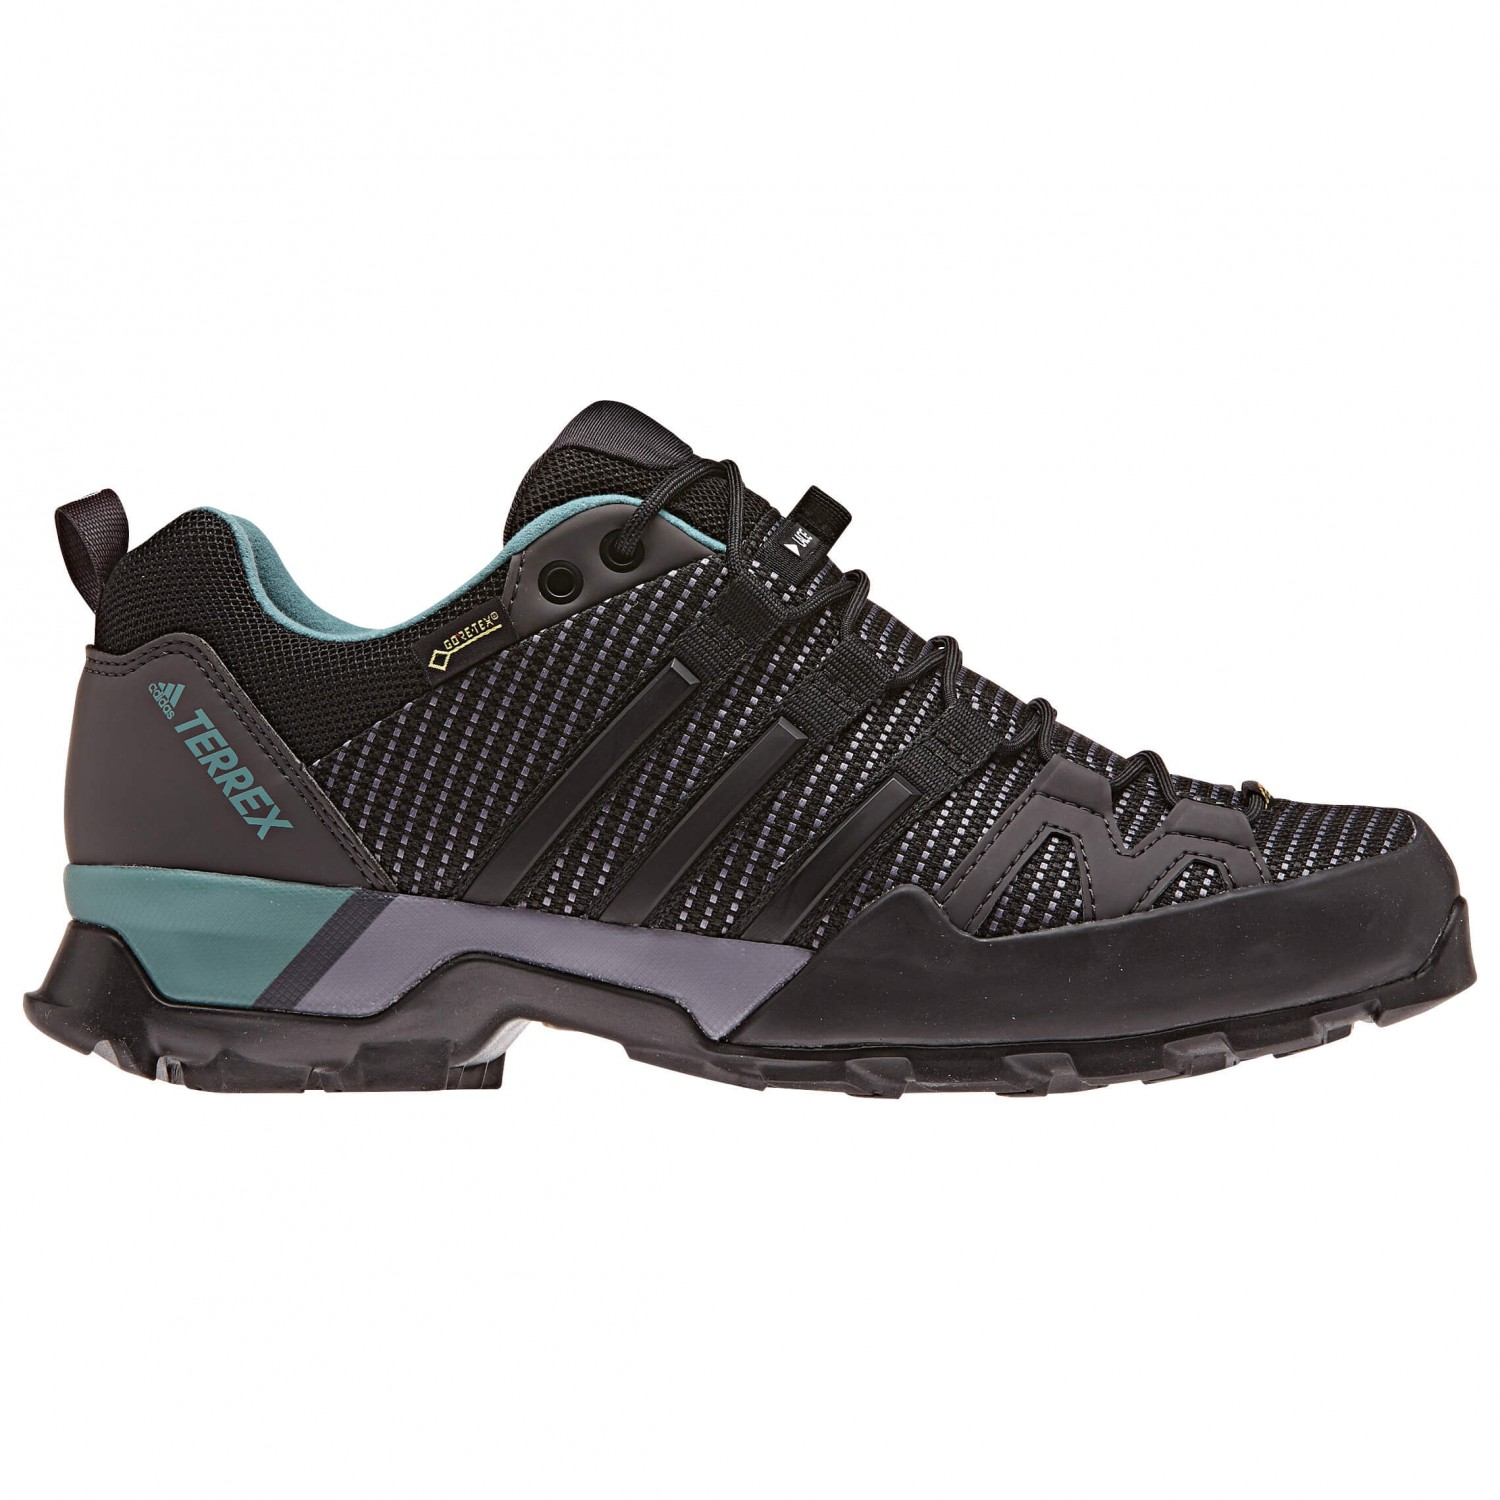 adidas Women's Terrex Scope GTX Chaussures d'approche